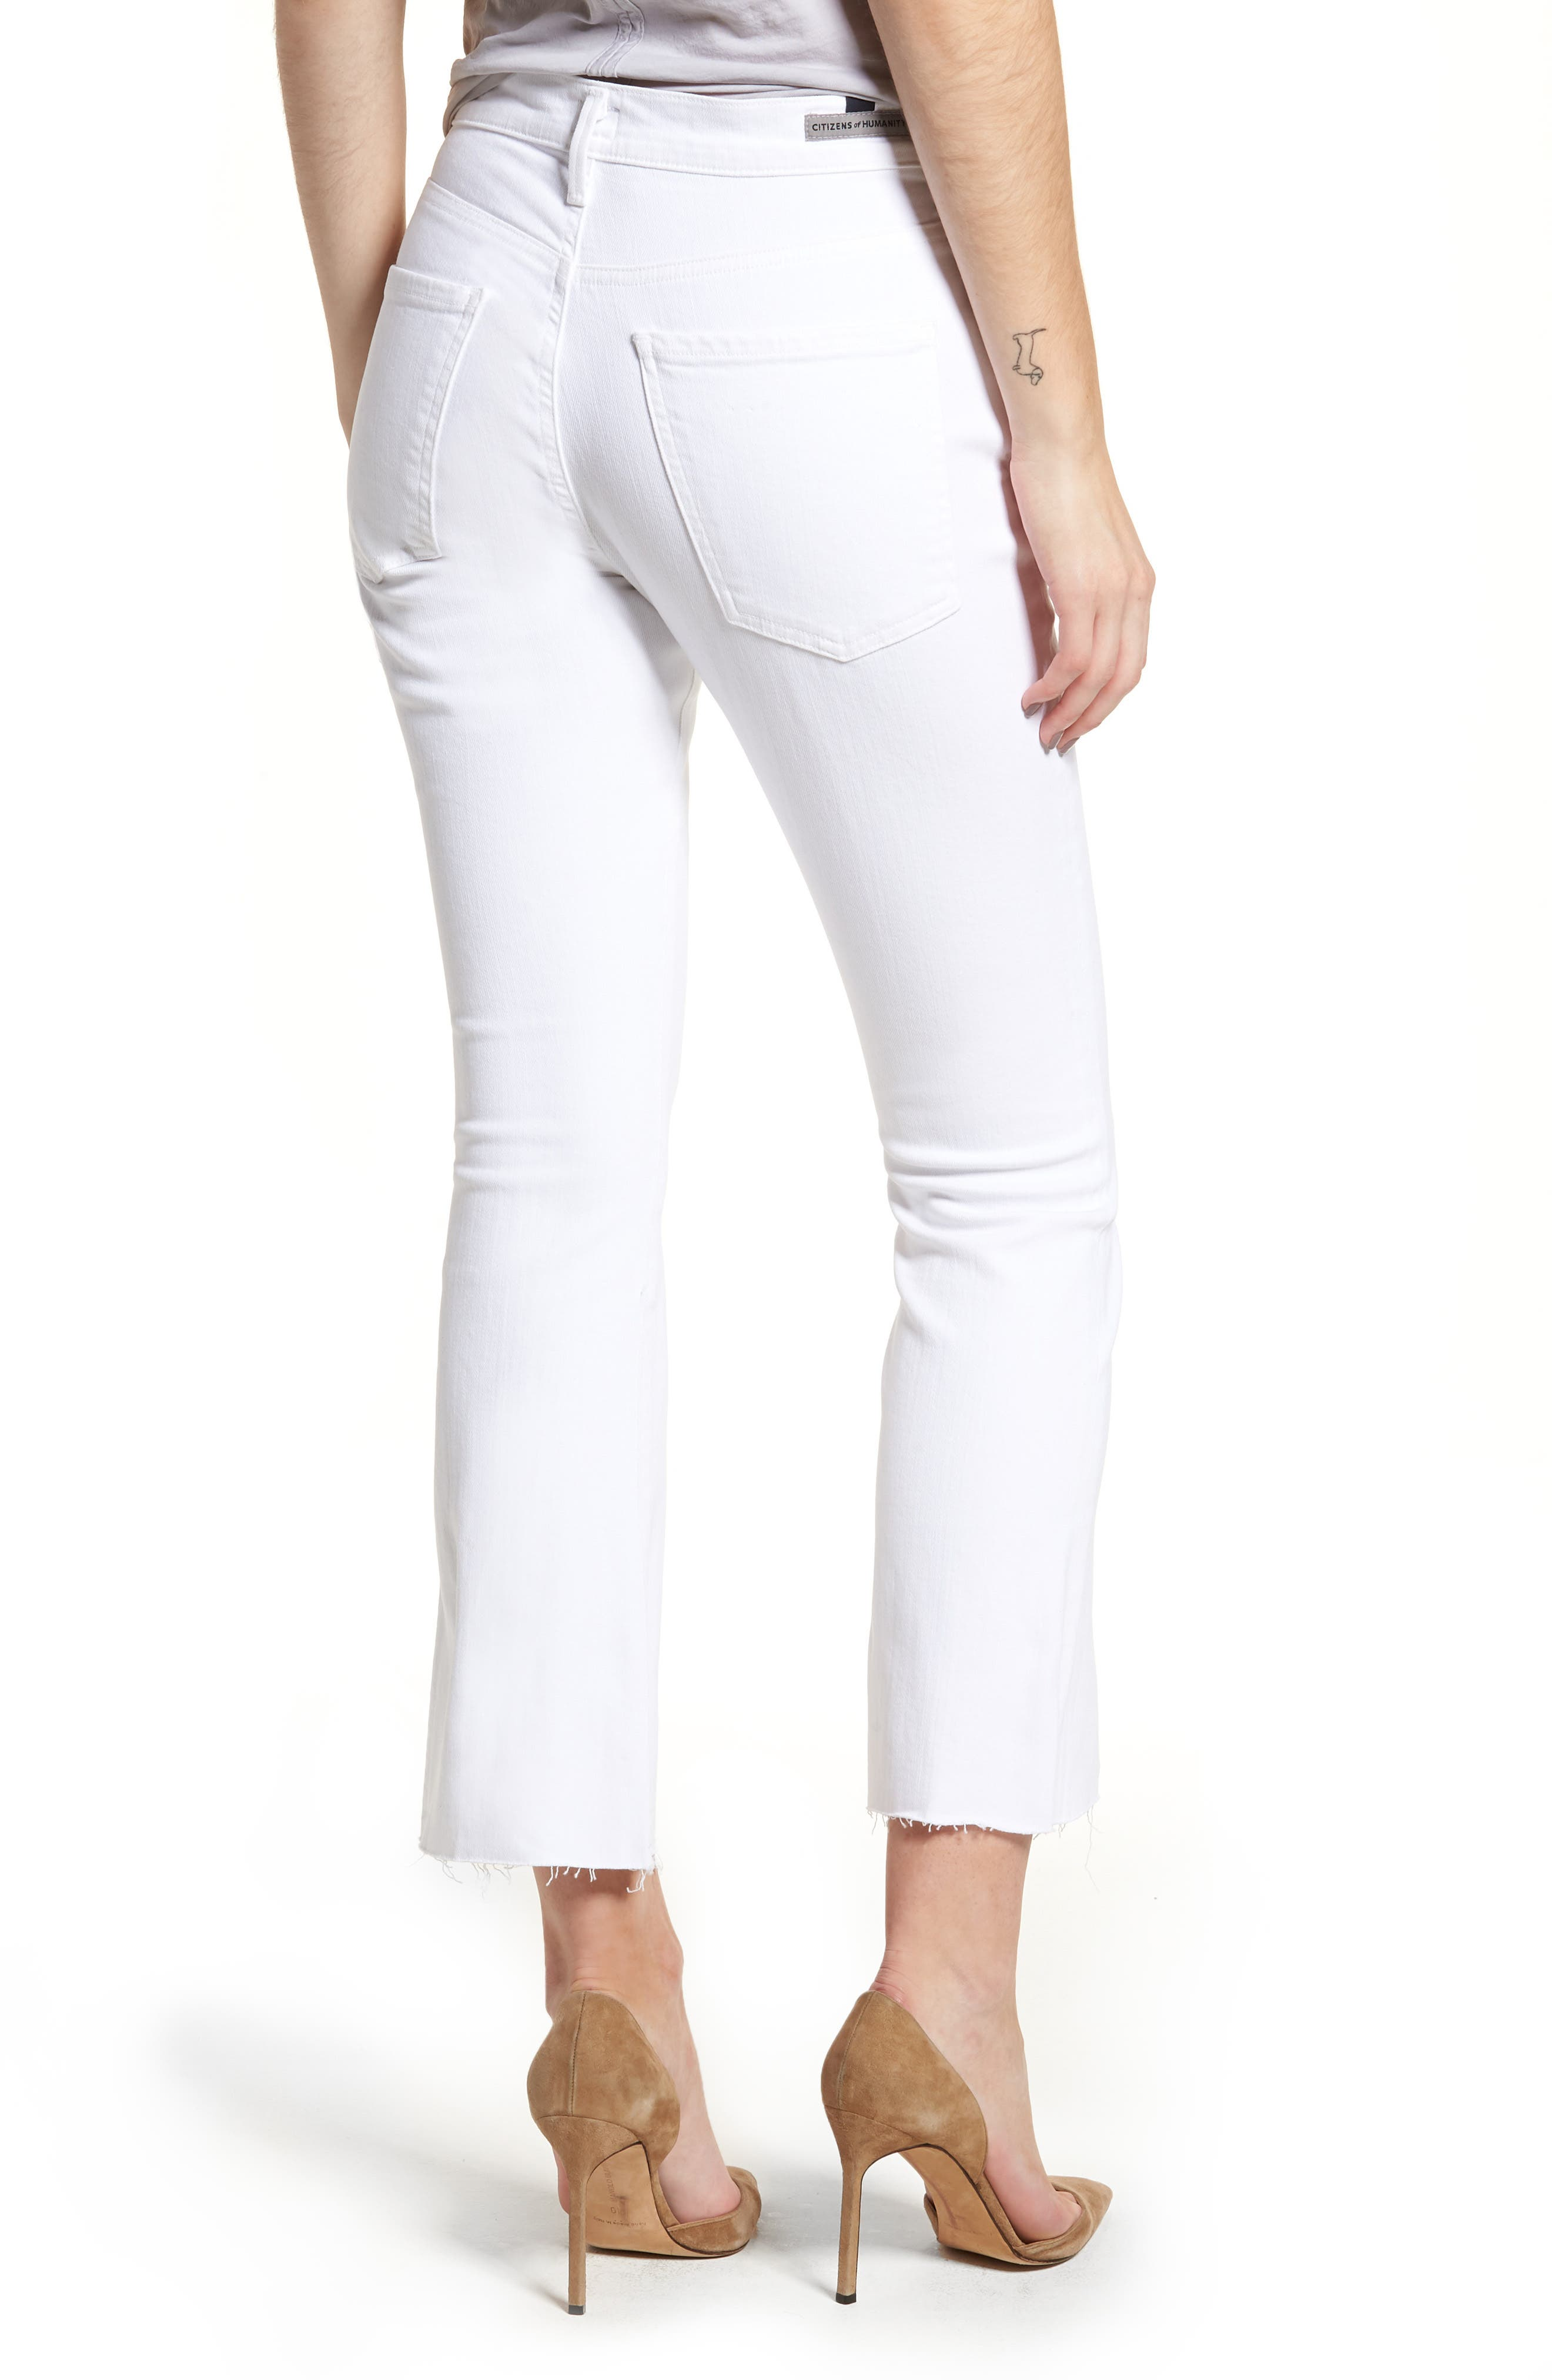 CITIZENS OF HUMANITY,                             Fleetwood Crop Straight Leg Jeans,                             Alternate thumbnail 2, color,                             104